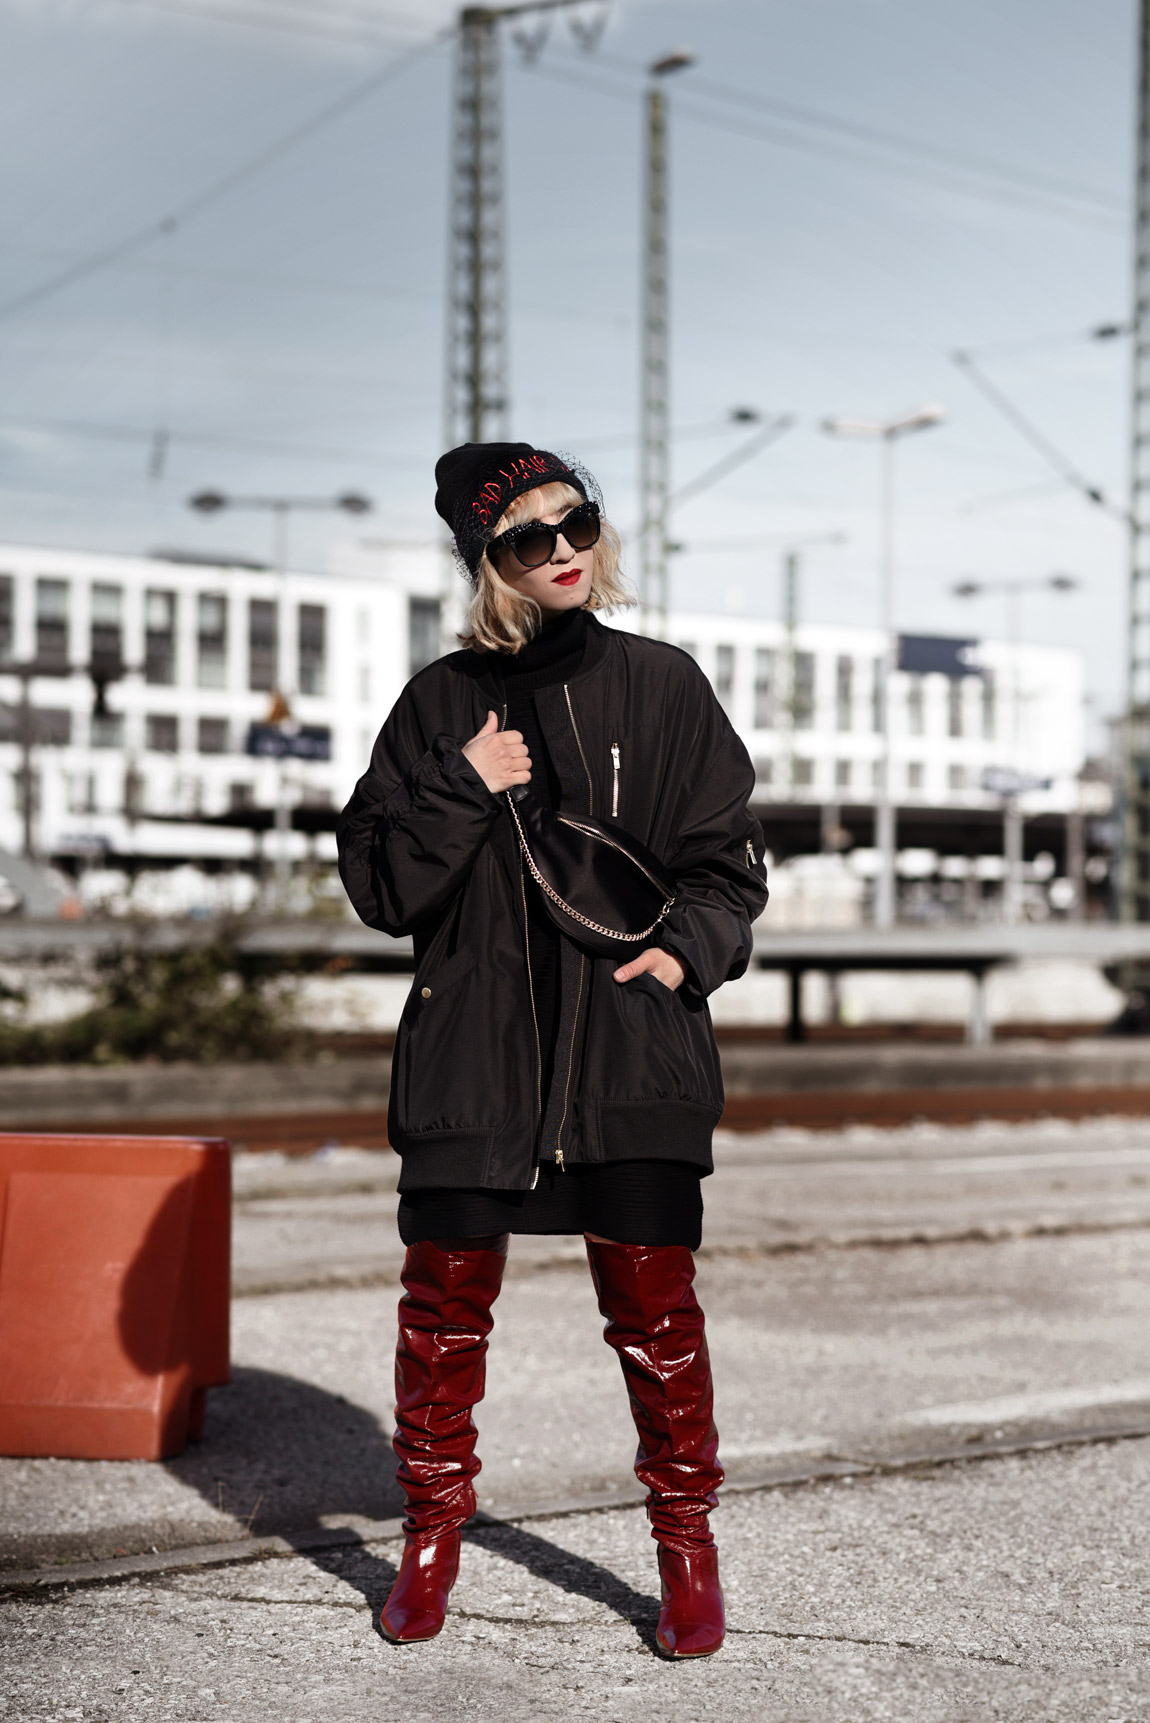 overknees, oversize, trend, rot, lackleder, fashionblog, modeblog, fashionblogger, münchen, streetstyle, bomberjacke, ootd, outfit, look, schwarz, inspiration